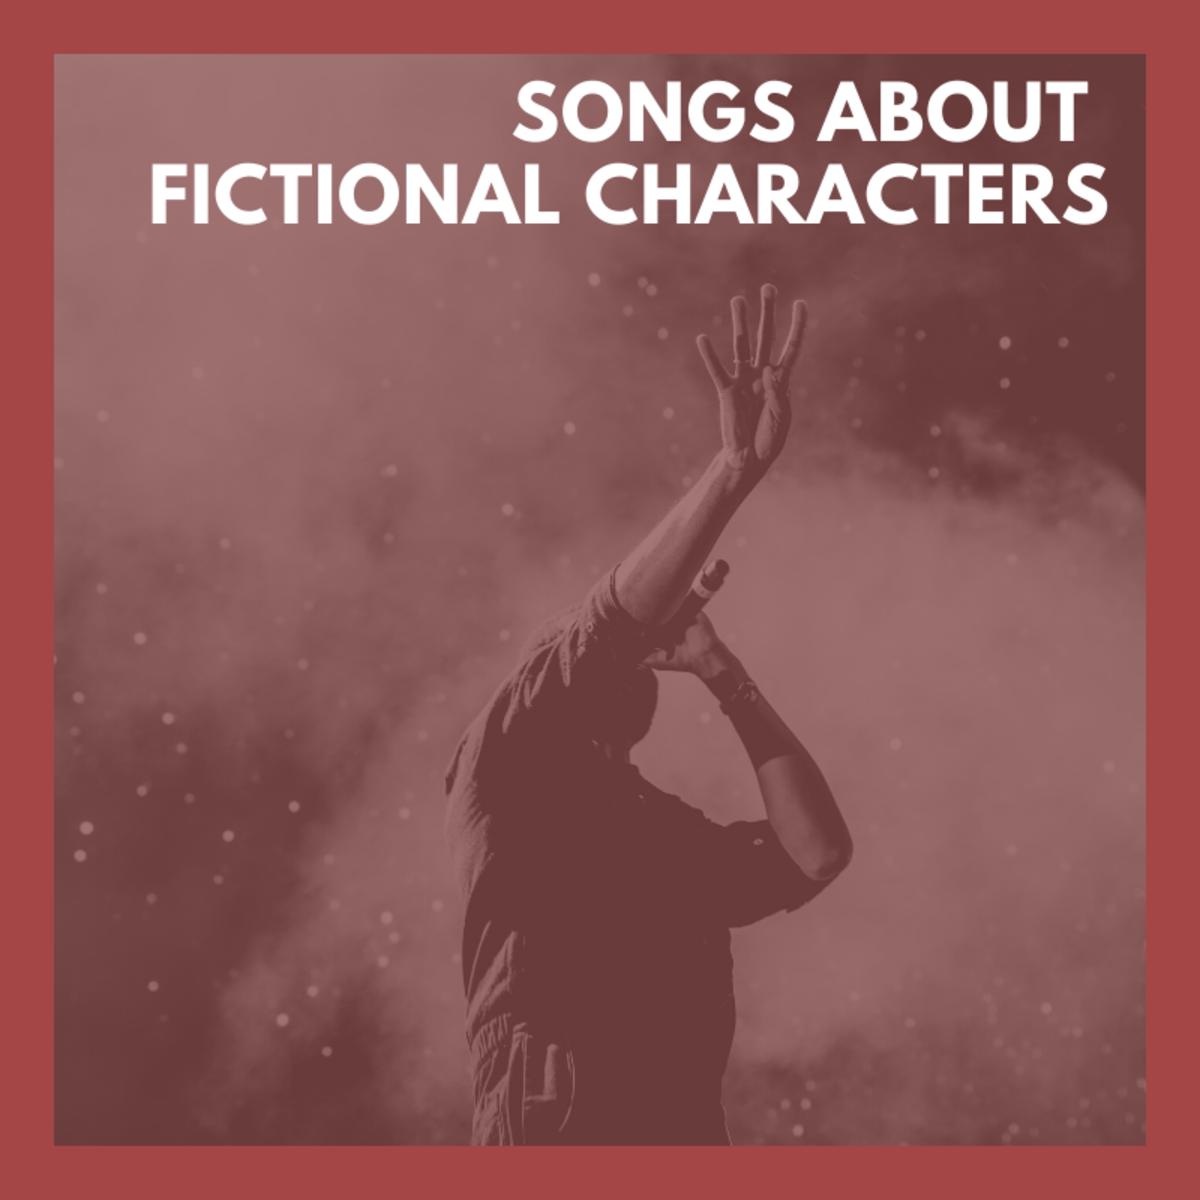 Top Ten Songs About Fictional Characters